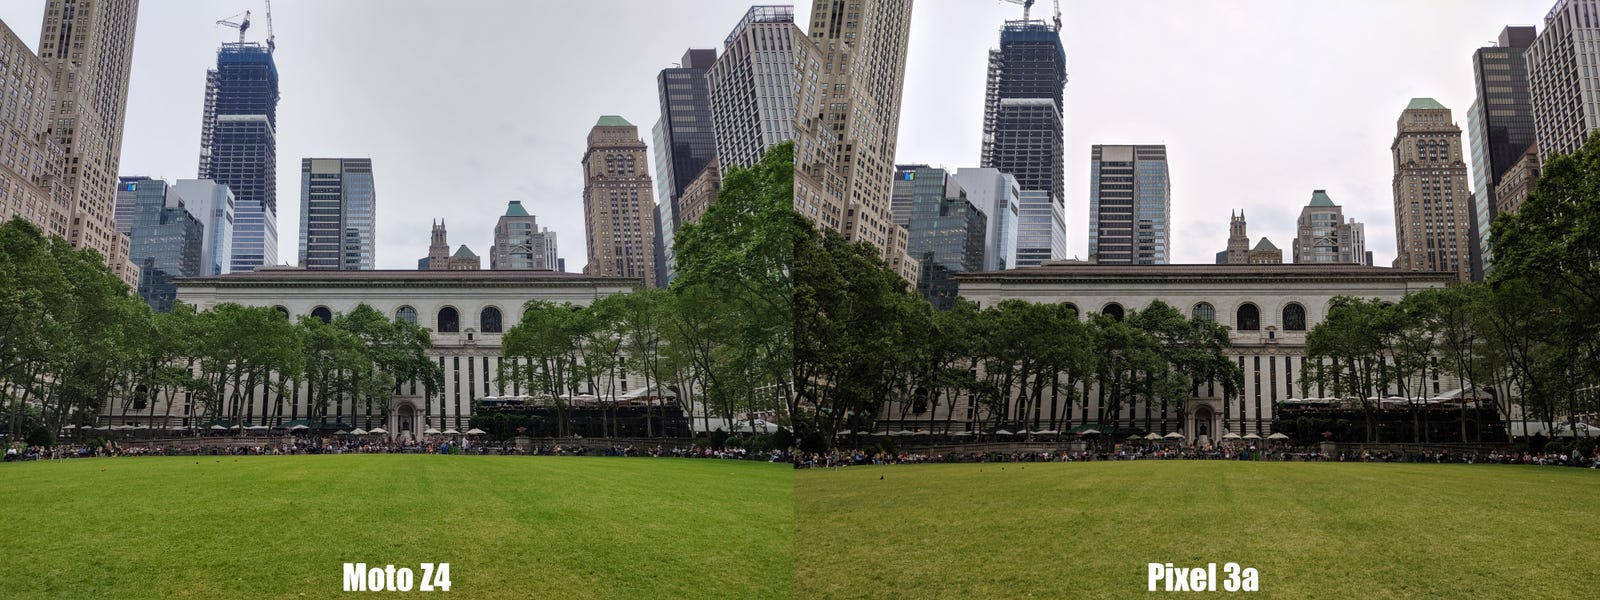 Click to enlarge and check out the difference in details on the walls of the New York Public Library.